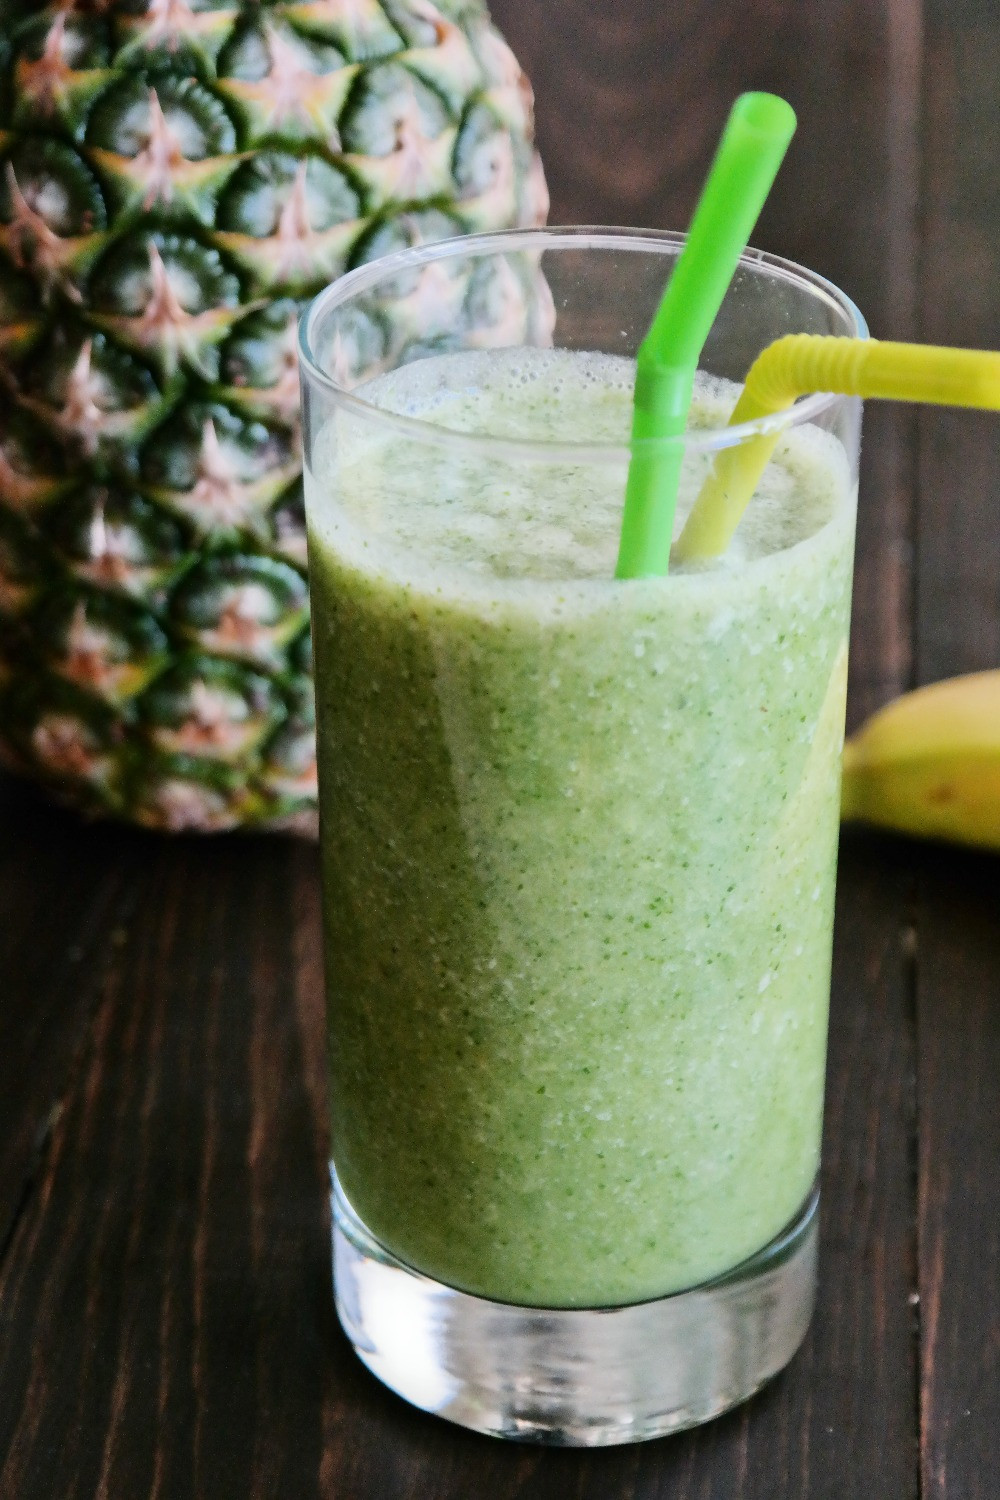 The Green Smoothie | eatlovegarlic.com @eatlovegarlic